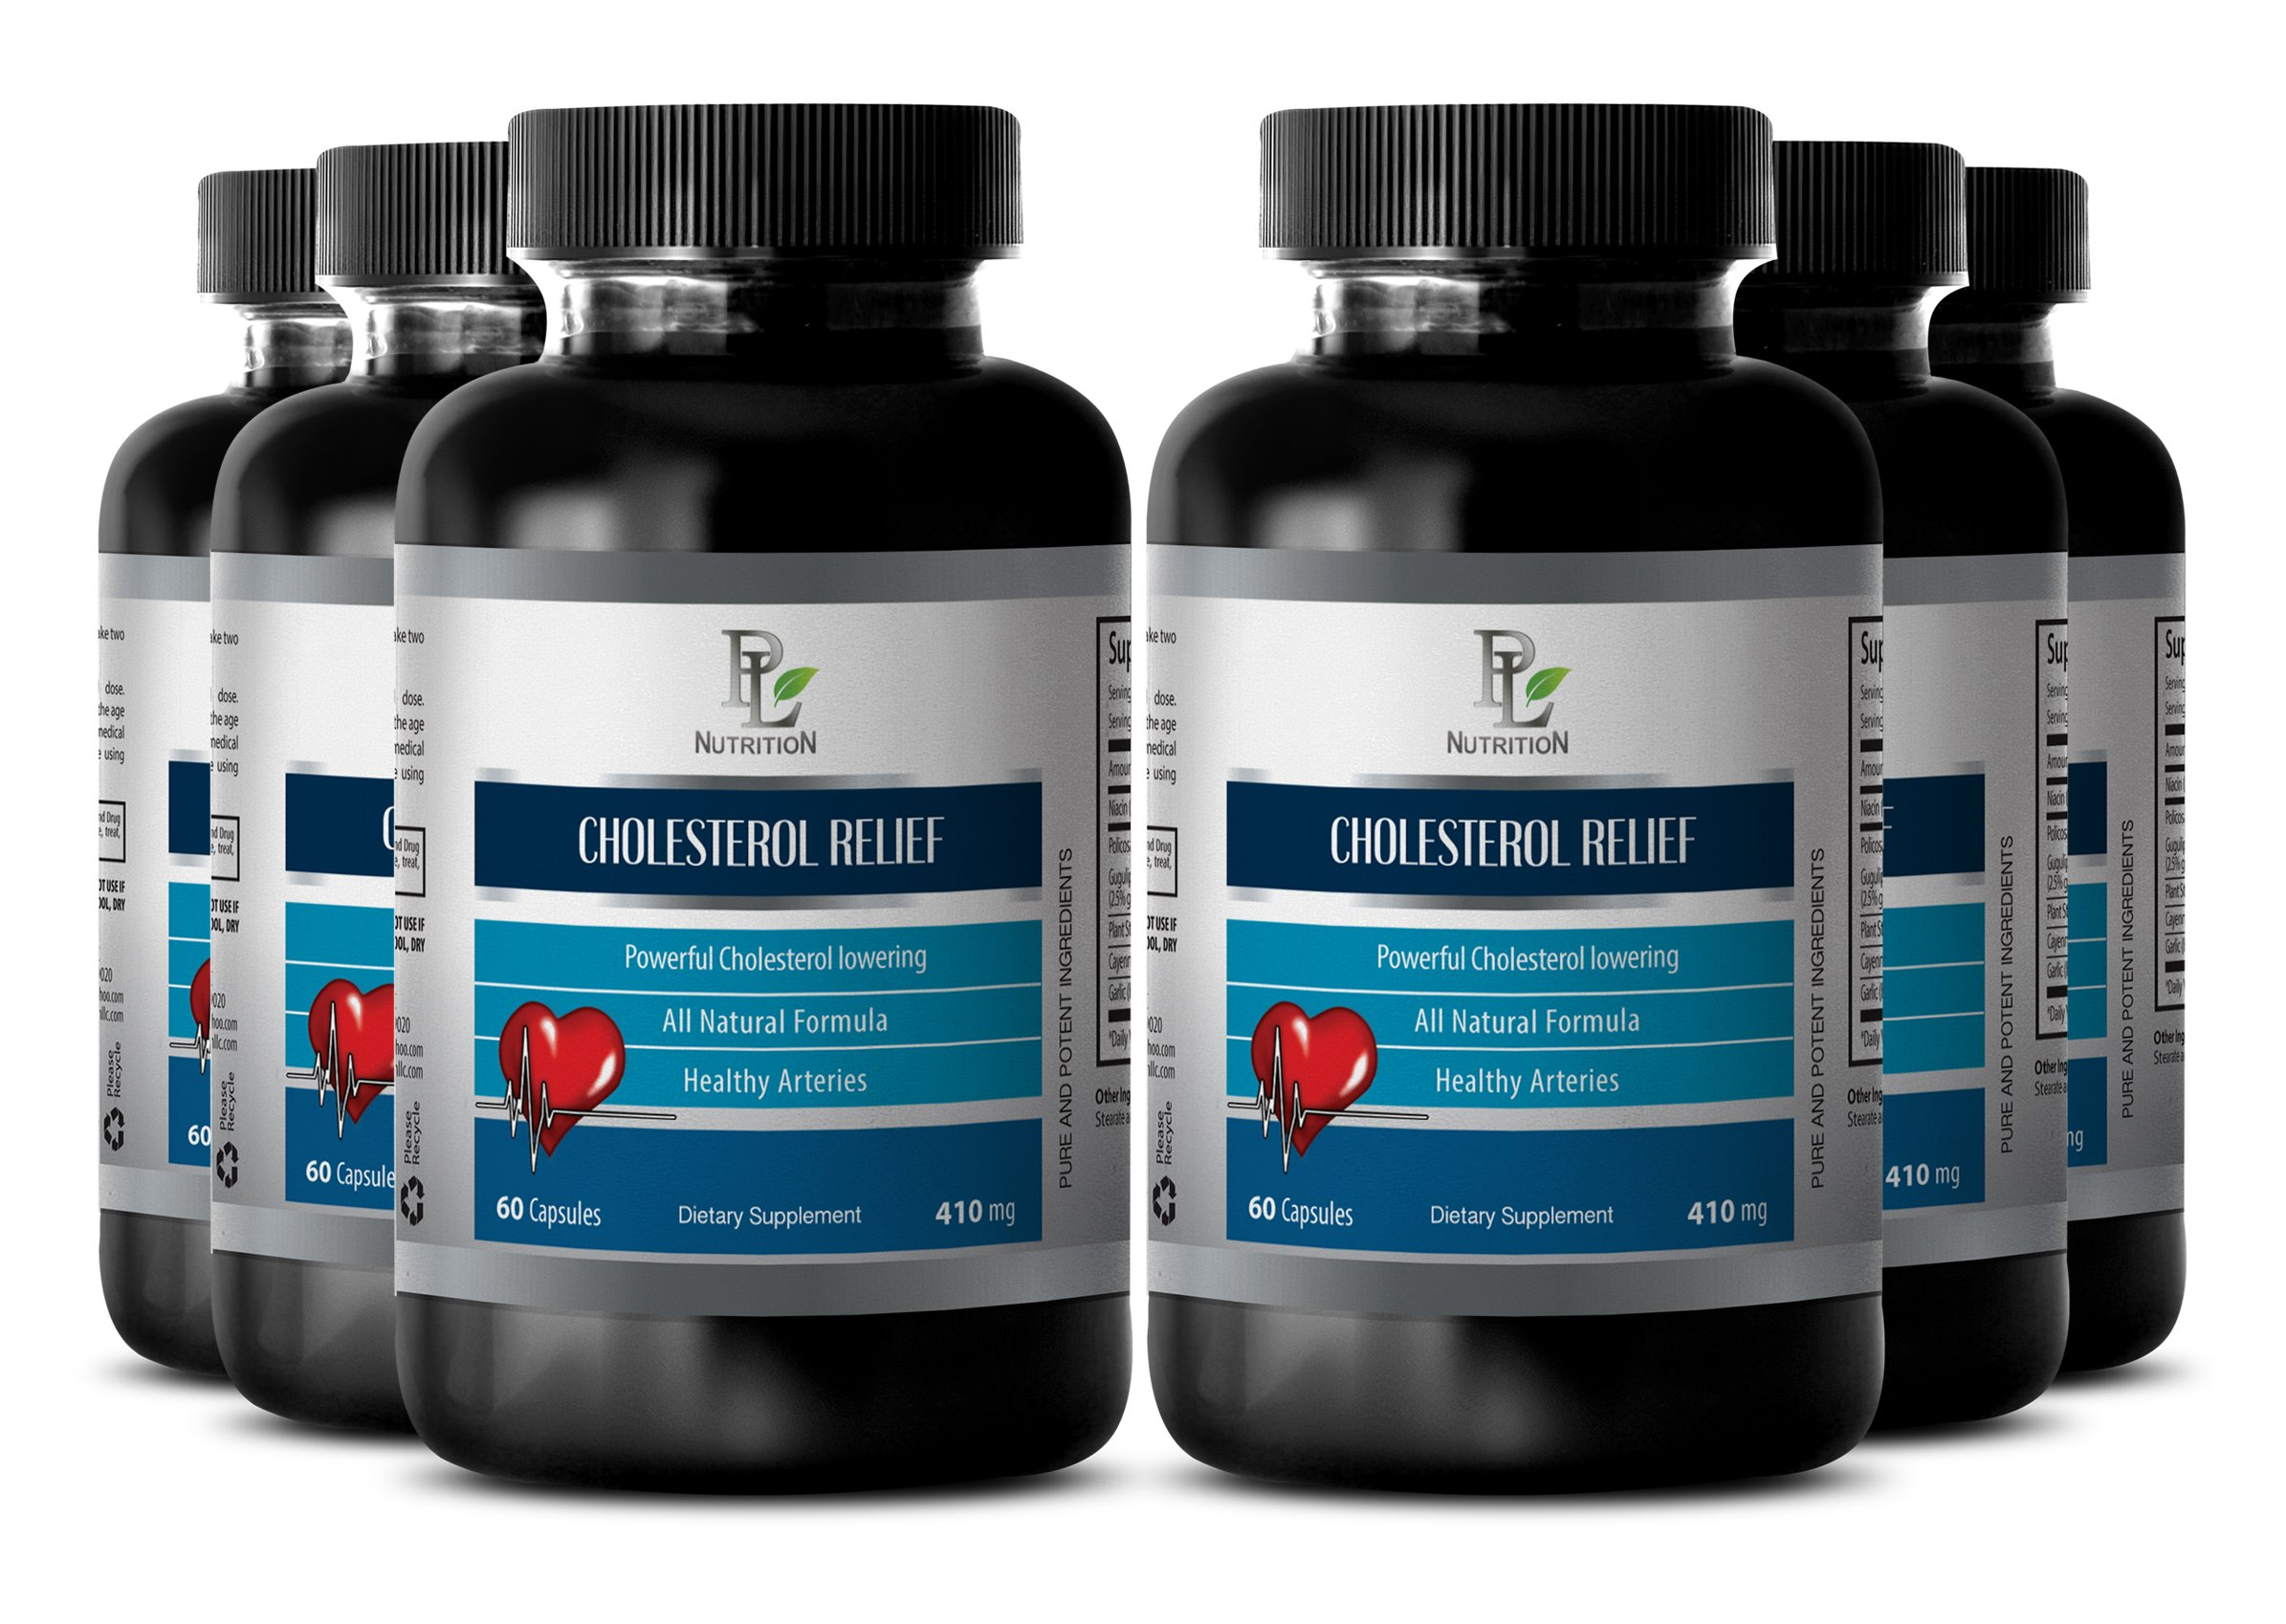 Liver regenerator - CHOLESTEROL RELIEF - Digestive aid - 6 Bottles 360 Capsules by PL NUTRITION